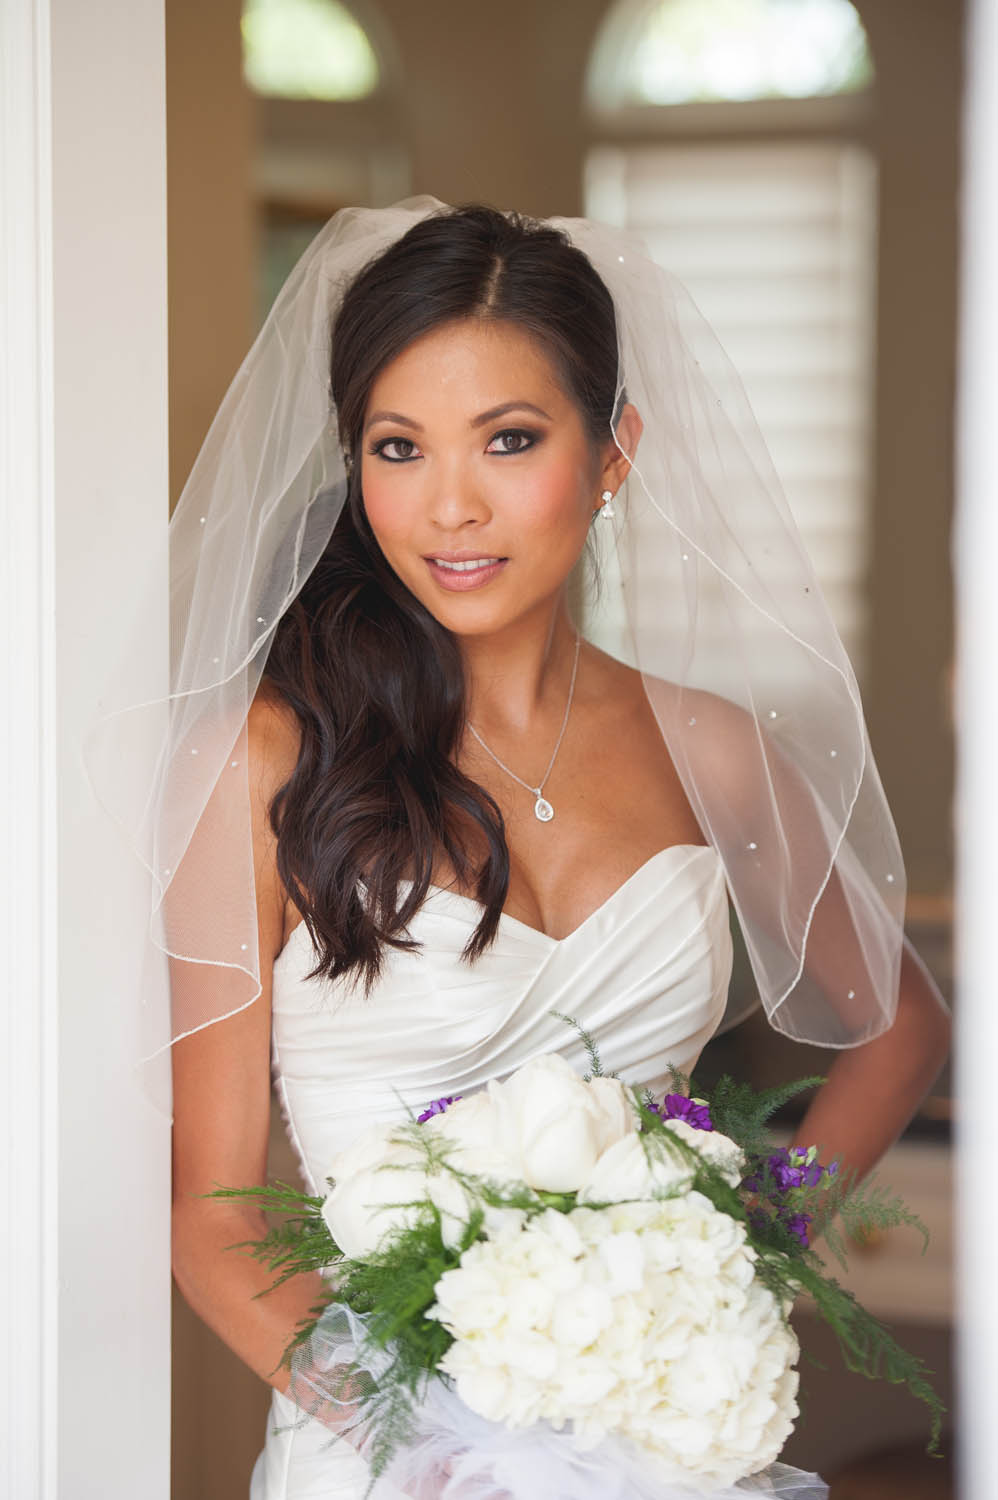 villa-de-amore-wedding-bride-portrait-ian-andrew-photography-084.jpg